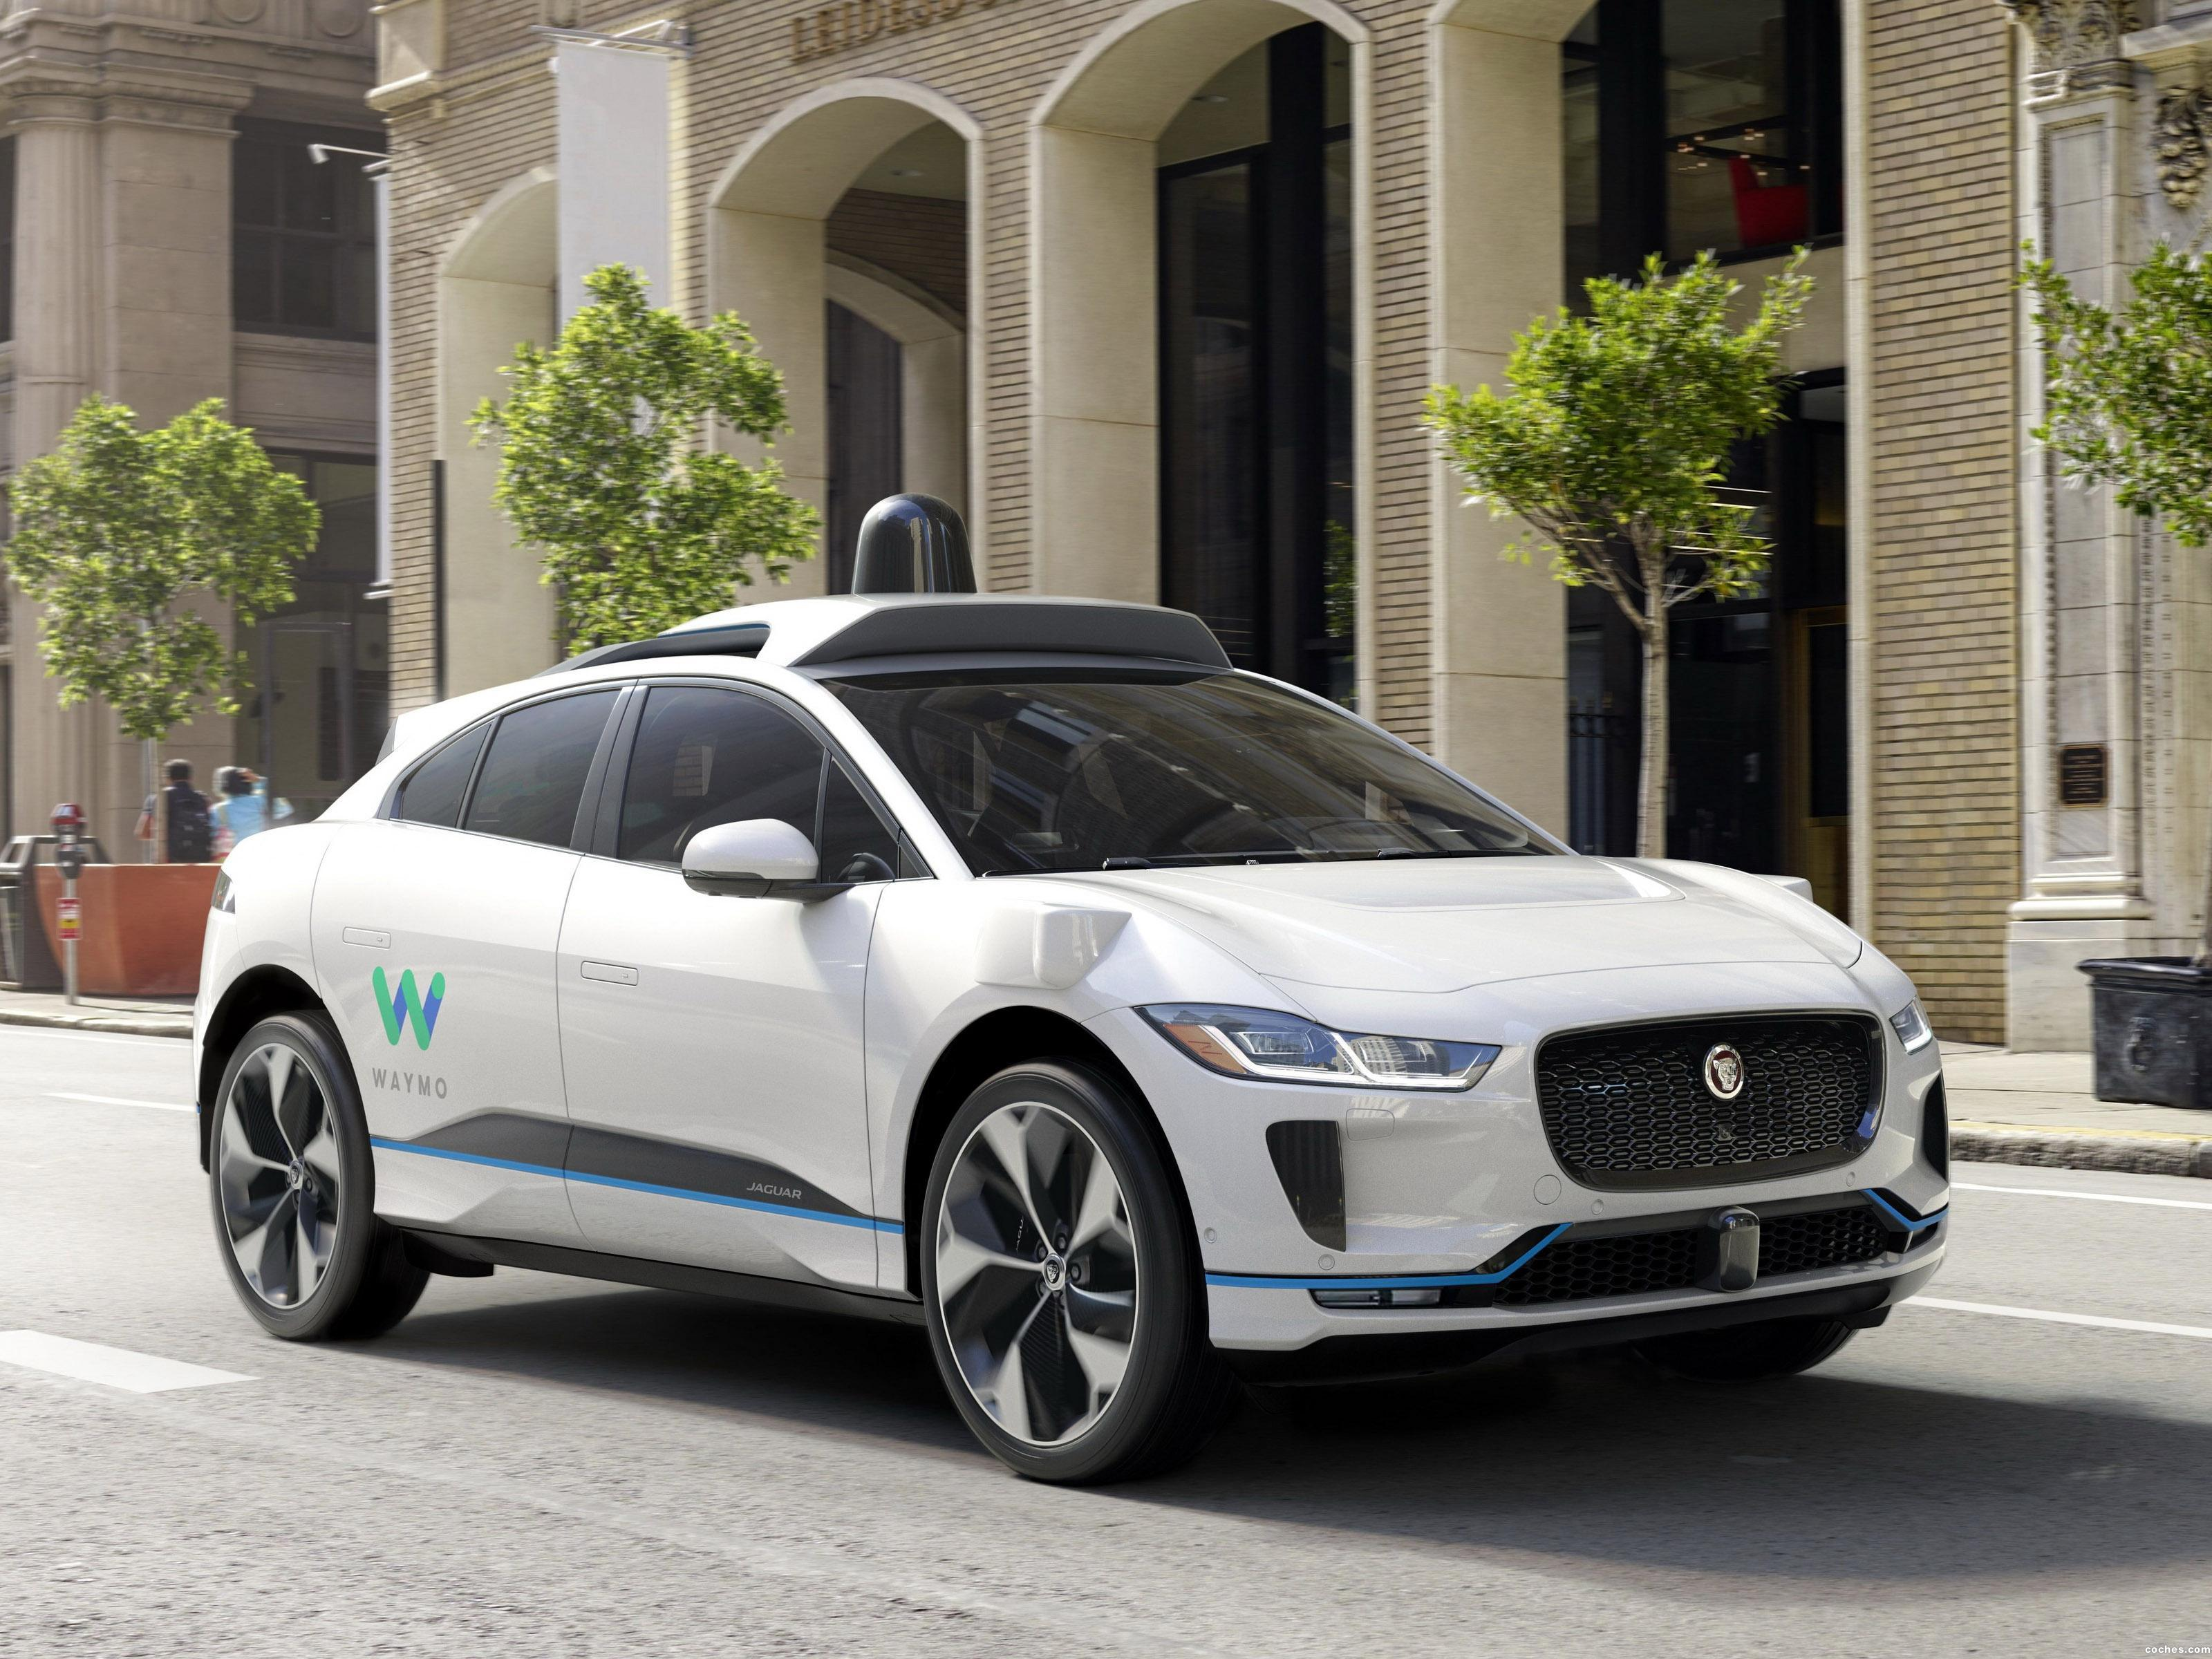 jaguar_i-pace-ev400-waymo-self-driving-vehicle-2018_r4.jpg